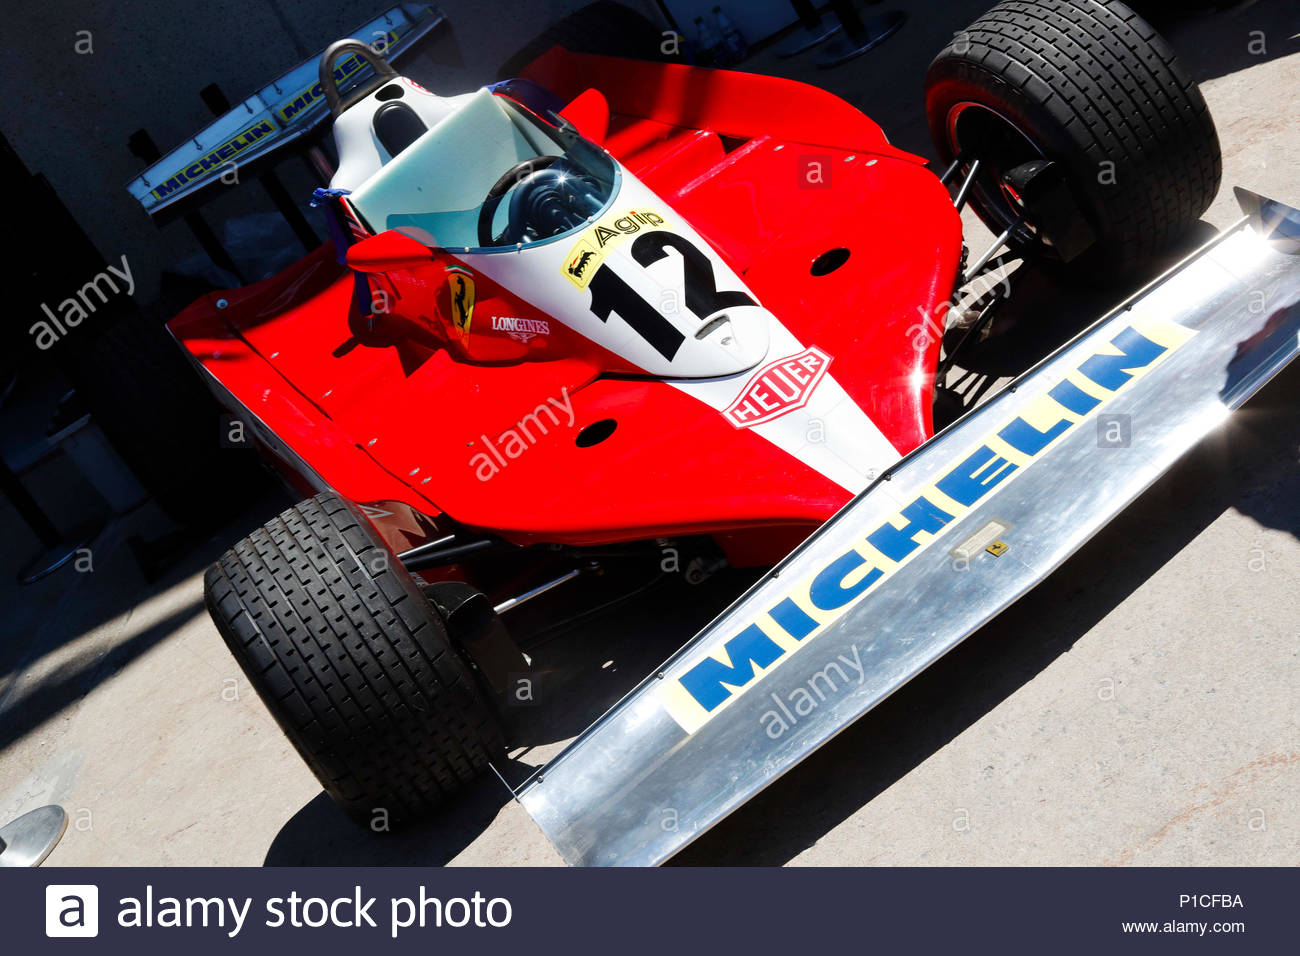 Ferrari 312 Stock Photos Amp Ferrari 312 Stock Images Alamy